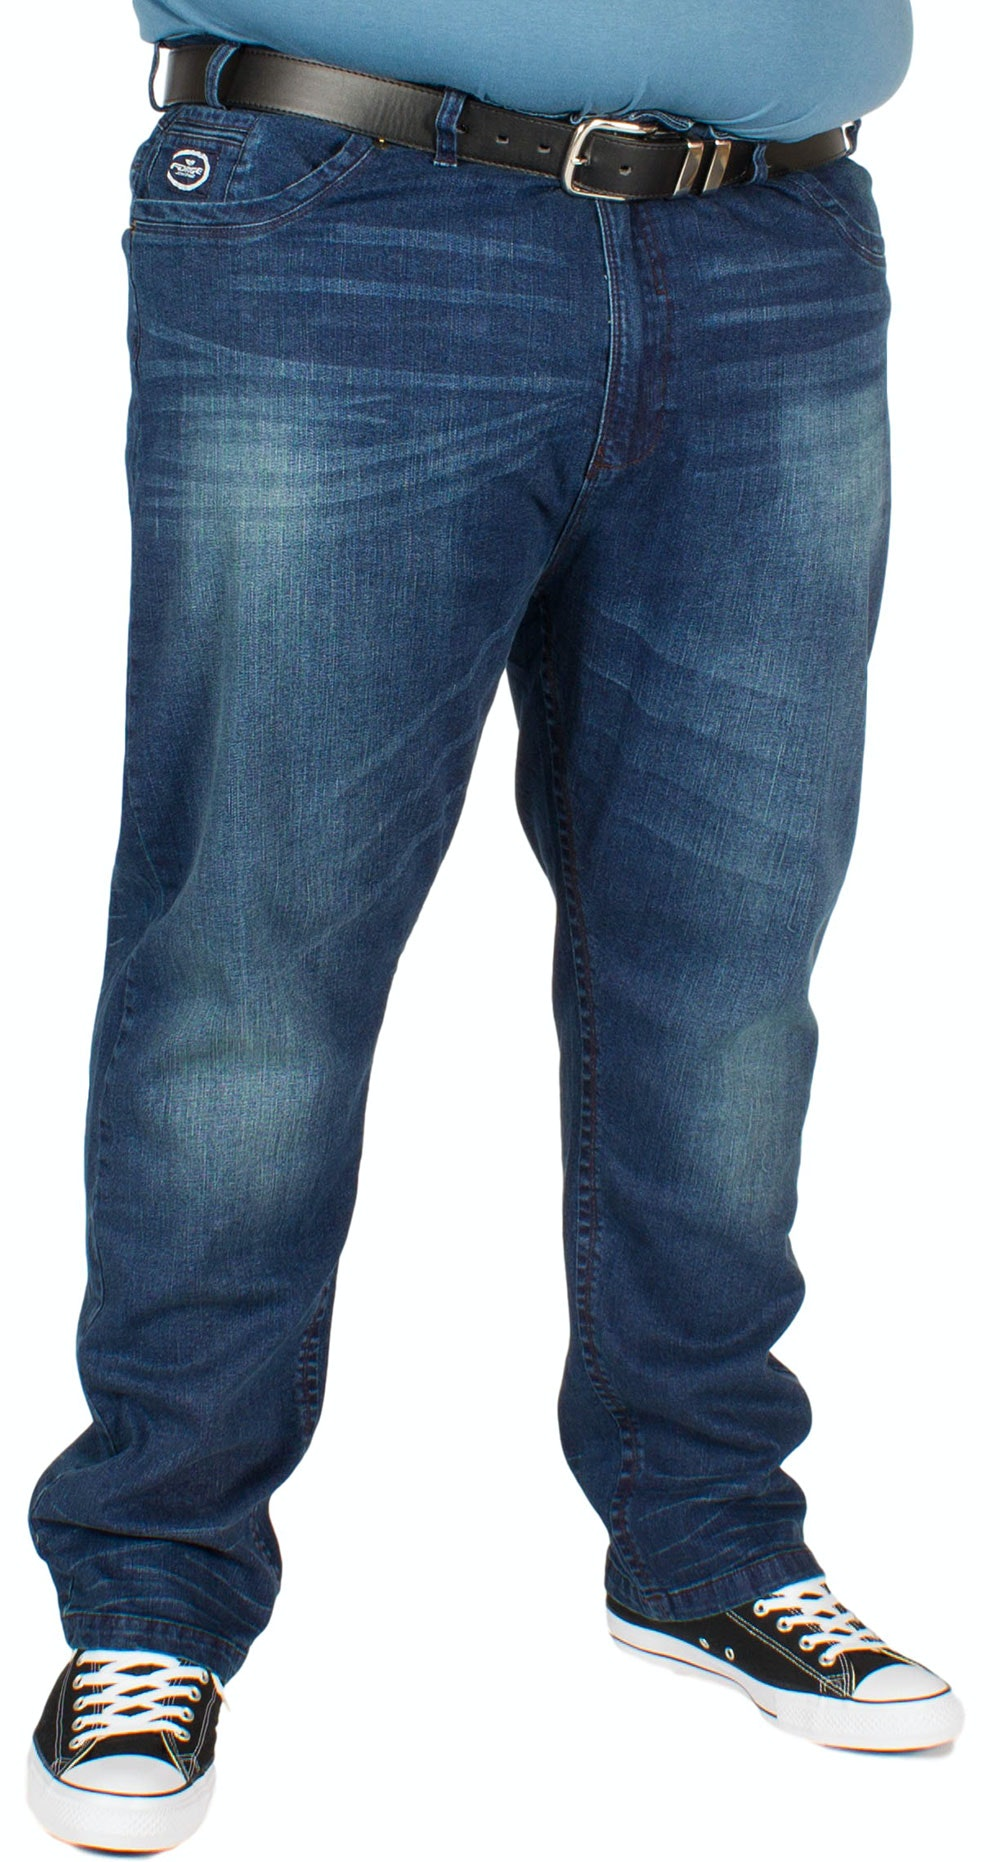 KAM Harry Stretch Fit Jeans